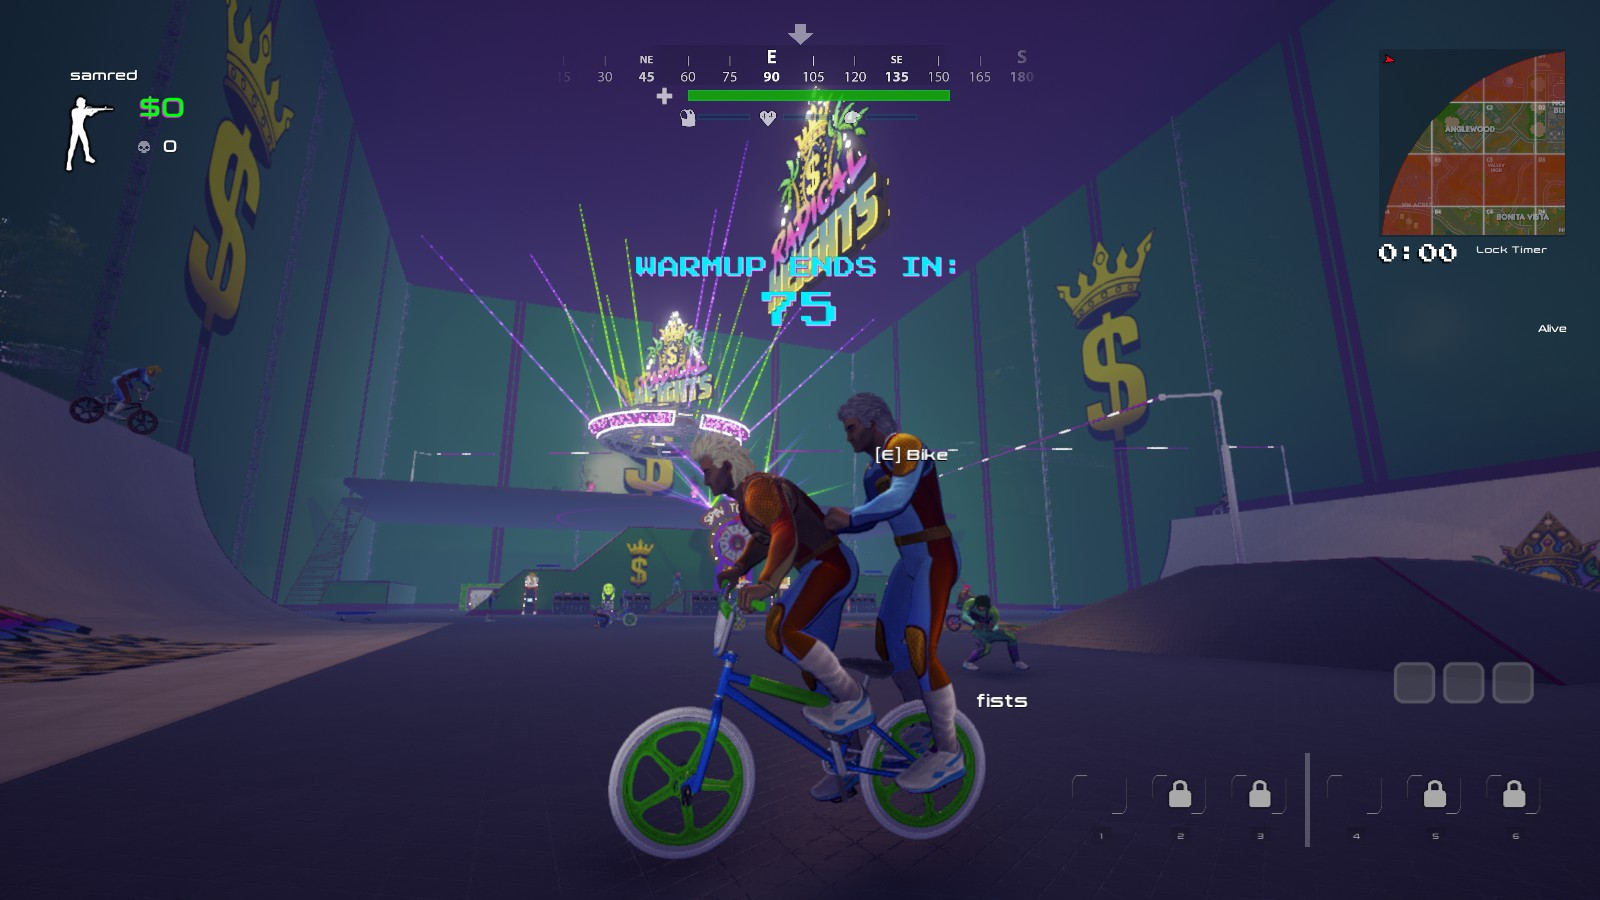 The pre-match lobby is also painfully barren, but at least you can ride around on BMX bikes with a bunch of other people. If that's your thing.